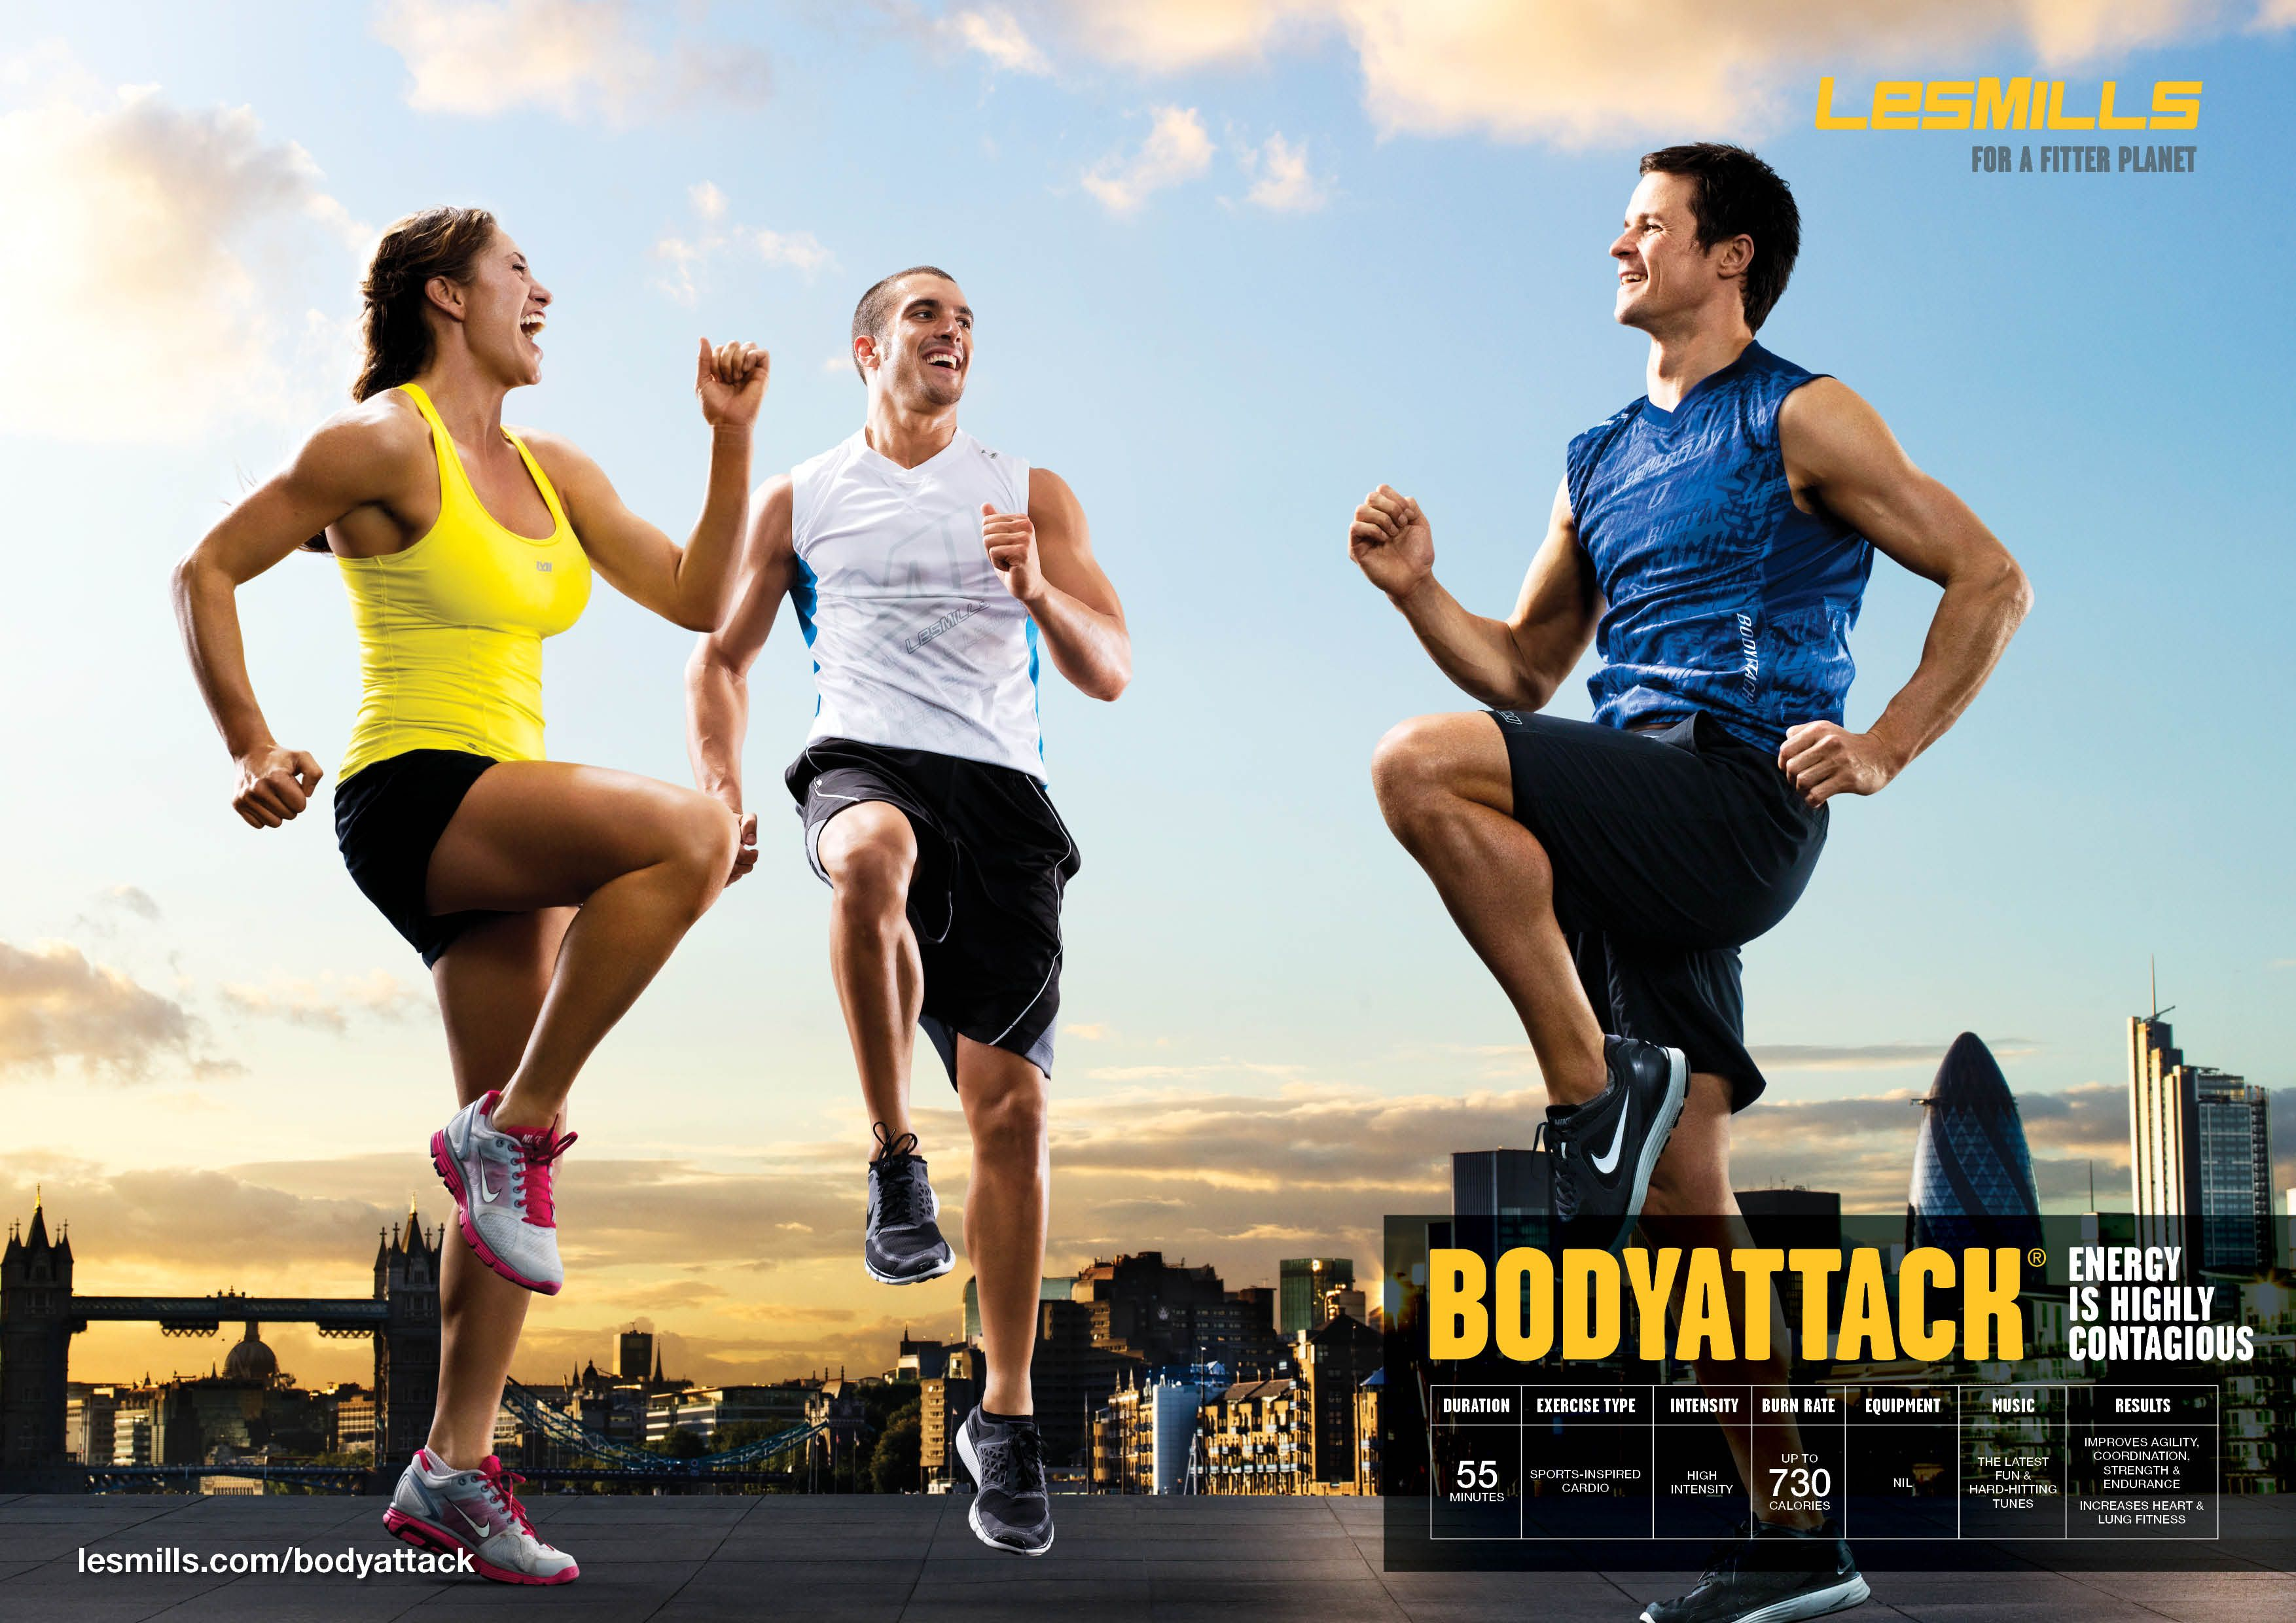 'Energy is Highly Contagious' Les Mills BodyAttack